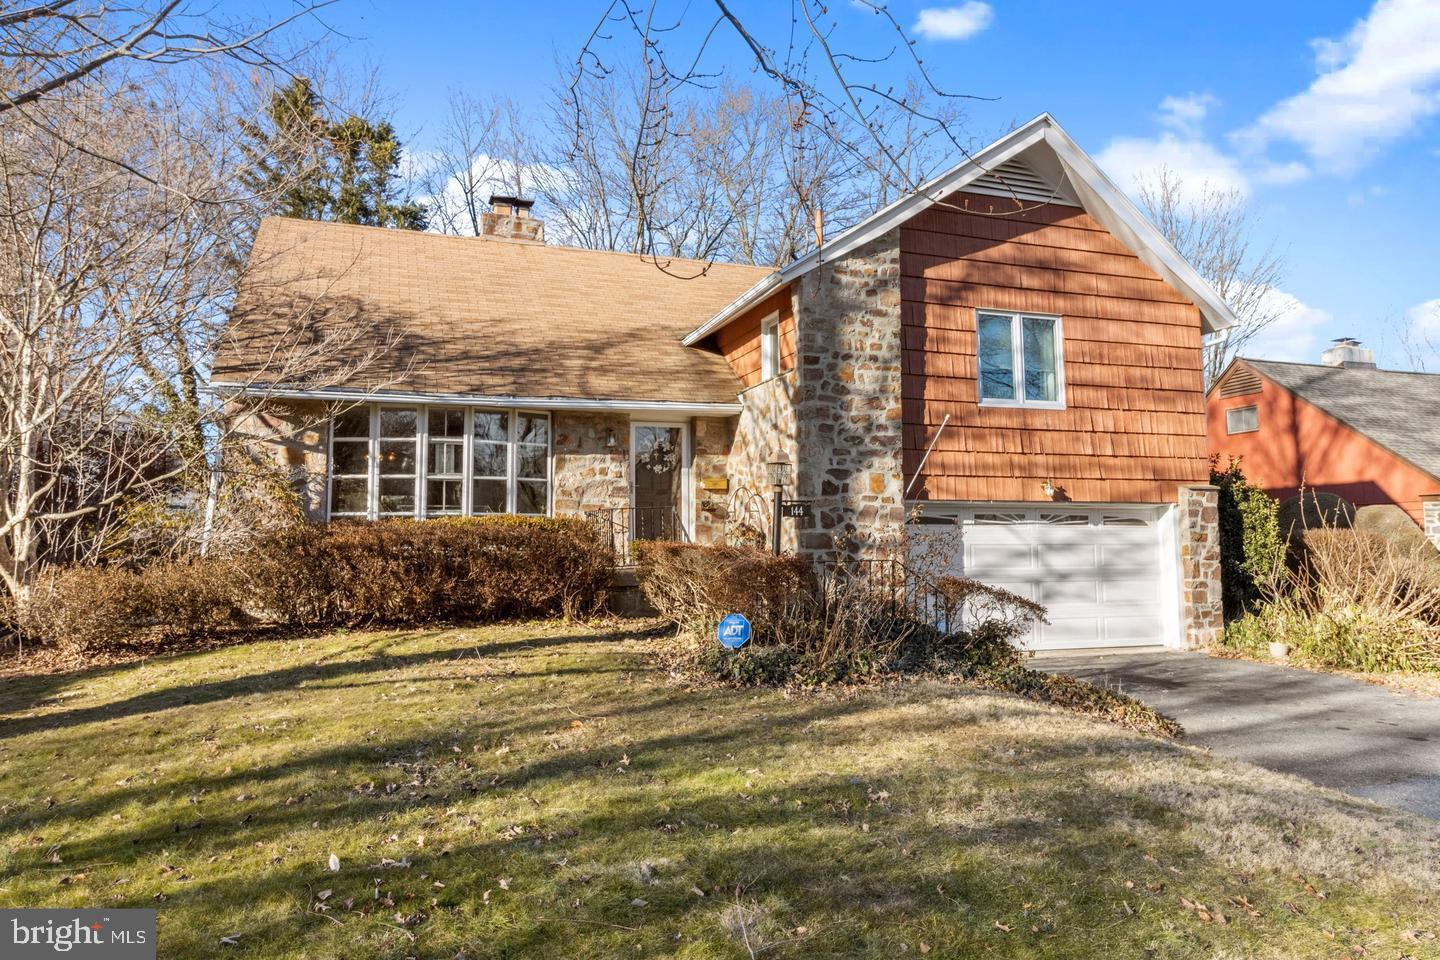 """Welcome to 144 Whitemash Road in the highly desirable Merion Golf Manor, """"One of the Best Places to Live,"""" on the Main Line. This home offers 4 bedrooms, 2.5 bathrooms and over 2,200 square feet. Life in the manor offers a convenient suburban lifestyle with an easy quick commute to the center city or NYC. Lots of great schools public and private, easy access to major highways, shopping, parks and playgrounds. Enter into an open circular main floor bright and spacious with a stone fireplace and large sunny bay window, perfect for entertaining in the living room, dining area and large kitchen. Two steps down from the dining area with double glass slider is the is heated garden sun room with a built in planter full of lush greenery and flowers. Boost your mood & feel like eternal spring during the cold winter, warm and cozy inside. Two steps down from there is an outside patio area full of perennial flowers blooming of the year, a nice yard with a shed for extra storage on the far side of the yard. Just off the patio is the den entrance with a powder room and bar area. Five steps below is a large tiles finished basement with a french drain around the full periphery and a separate laundry area with lots of storage. The upper level has 4 spacious bedrooms. The master bathroom has a ensuite bath with a double head stall shower and 2 closets. The hall bath has a tub. Large linen closet in the hall way. Carpeted now with original hardwood floors through out the main and 2nd floor hall and bedrooms just waiting to be exposed. The top level has a large bedroom/office space or both. 2-car garage with inside access. 144 Whitemarsh Road has so much to offer and will not last! Call to schedule a private showing today! Watch our video tour https://vimeo.com/492291281"""